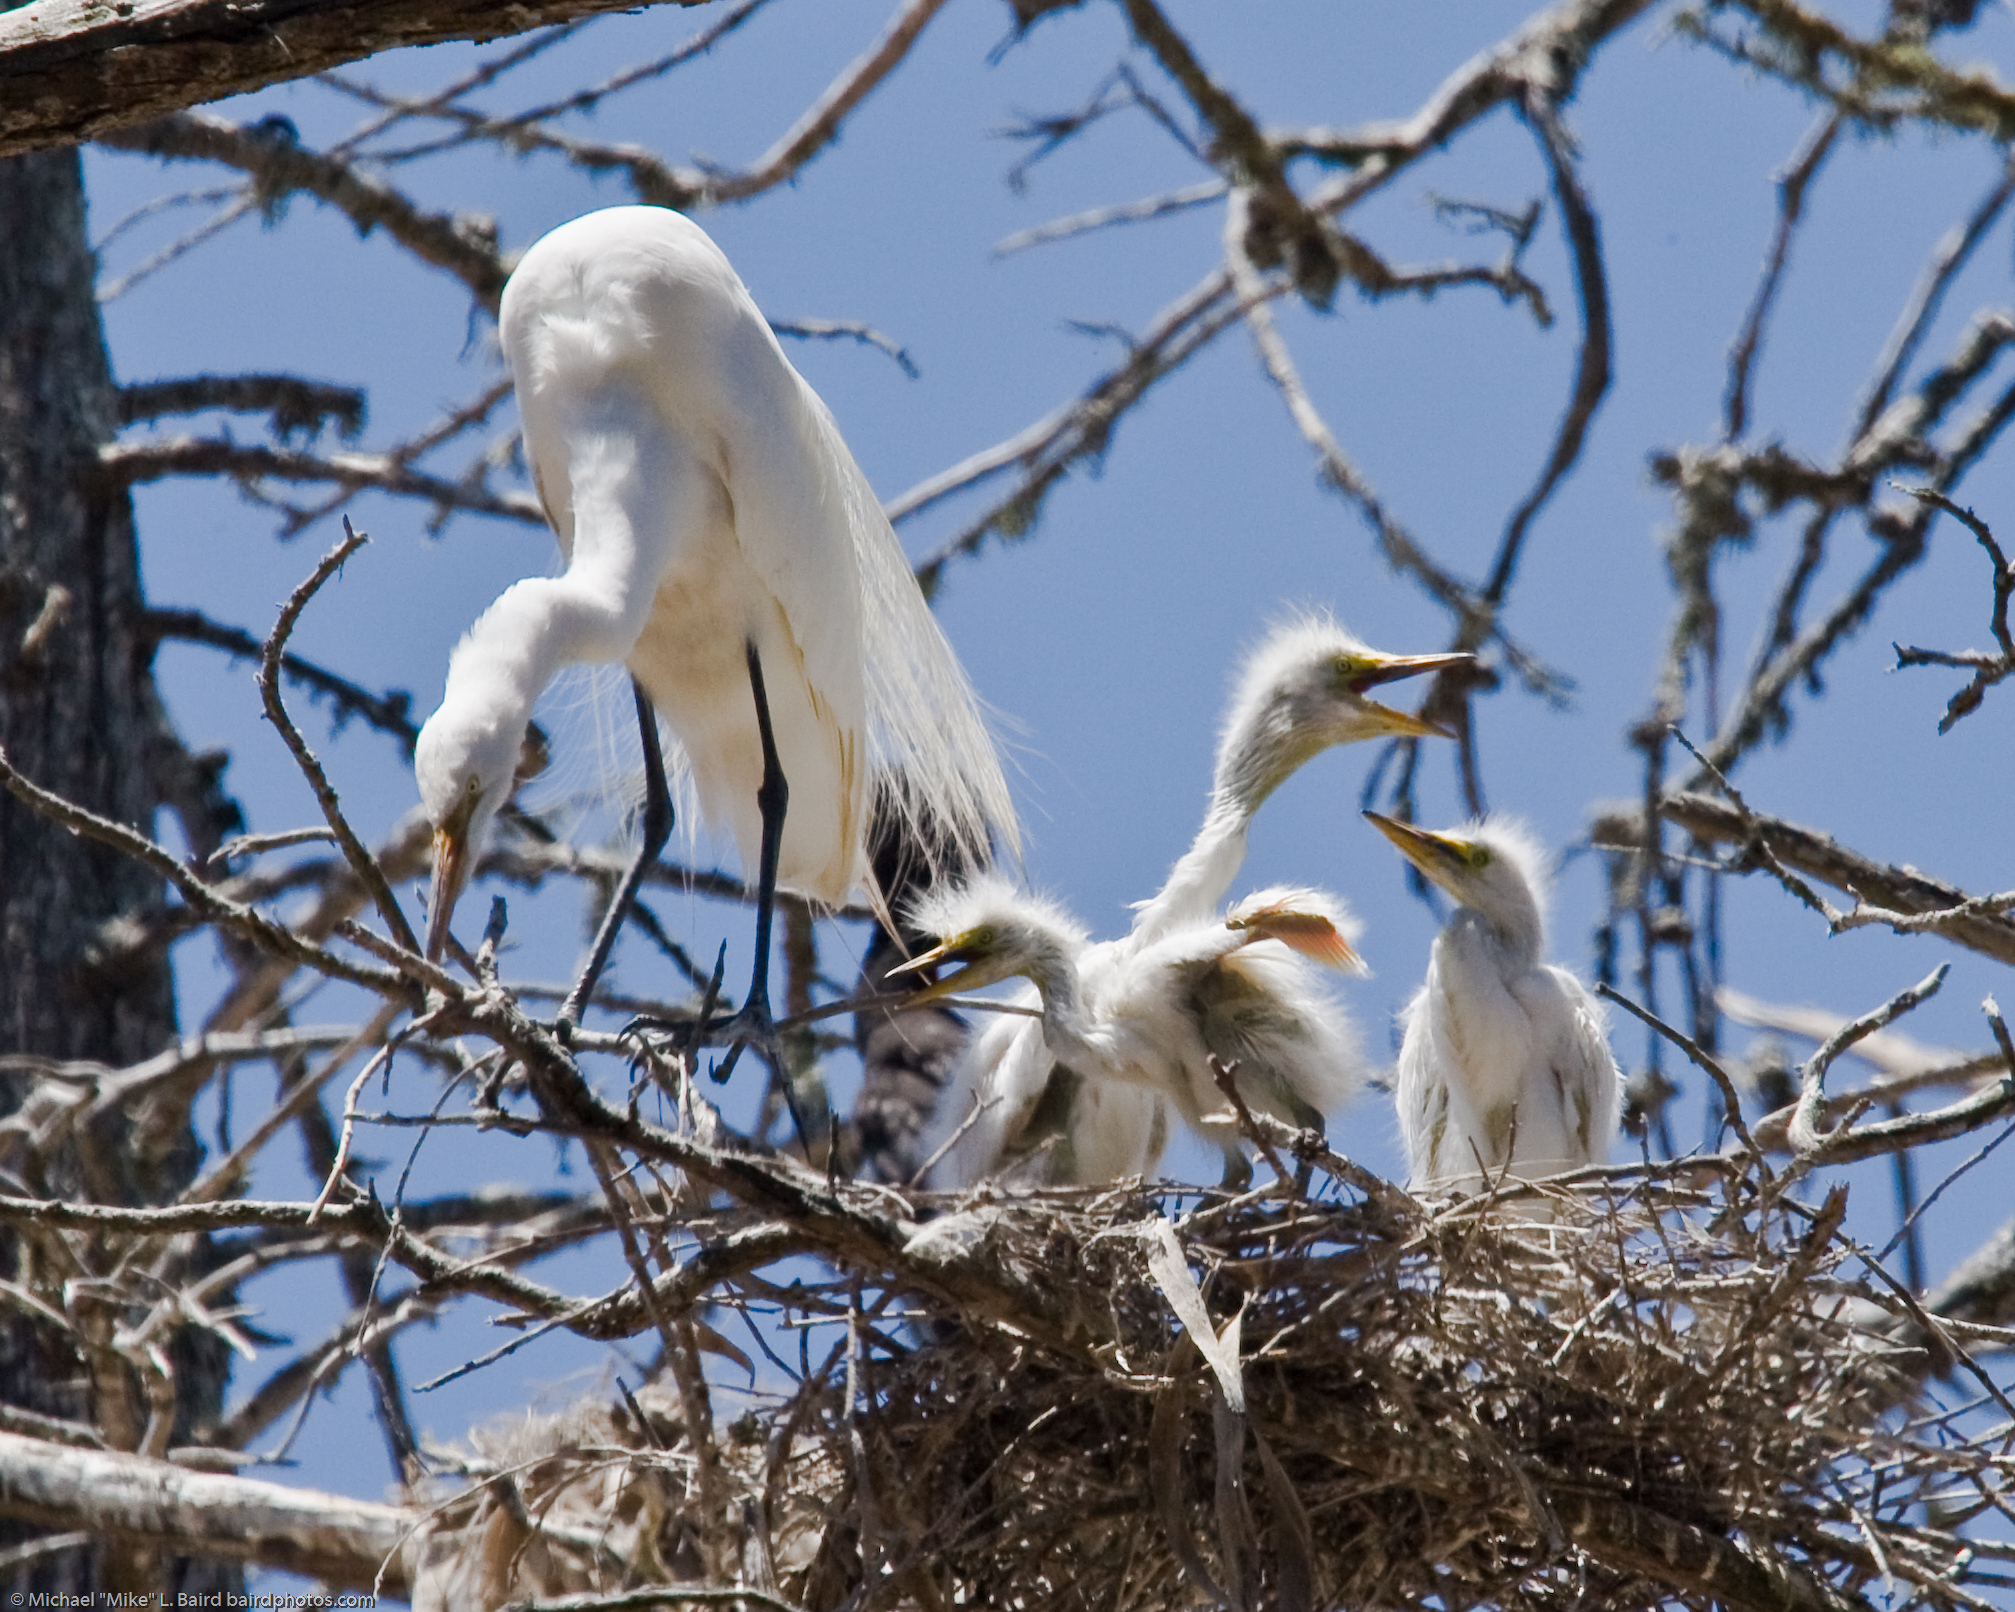 http://upload.wikimedia.org/wikipedia/commons/6/64/Great_Egret_%28Ardea_alba%29_chicks_with_parent_in_nest%2C_Morro_Bay_H_%282594536724%29.jpg